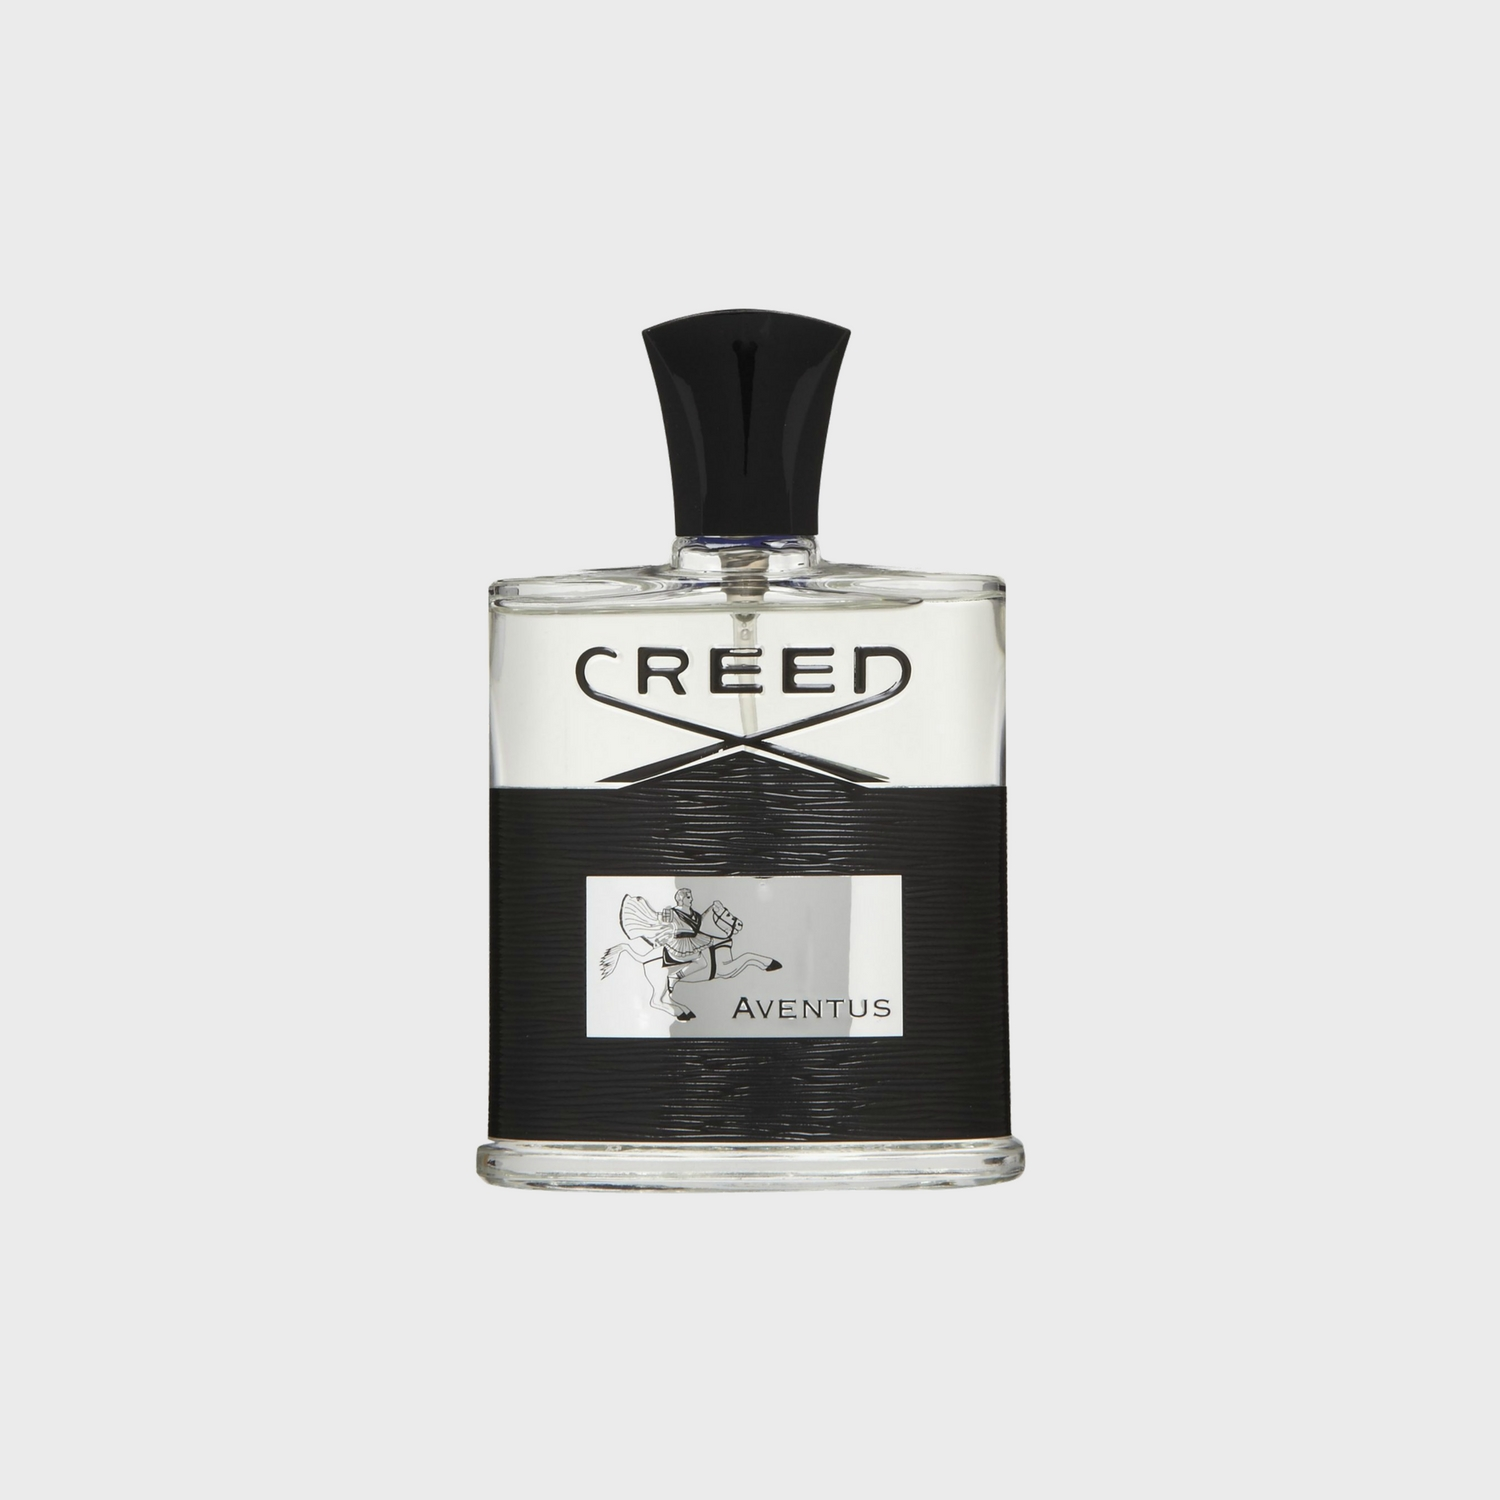 Creed Aventus Review , Creed Perfume, Men's Fragrance Review